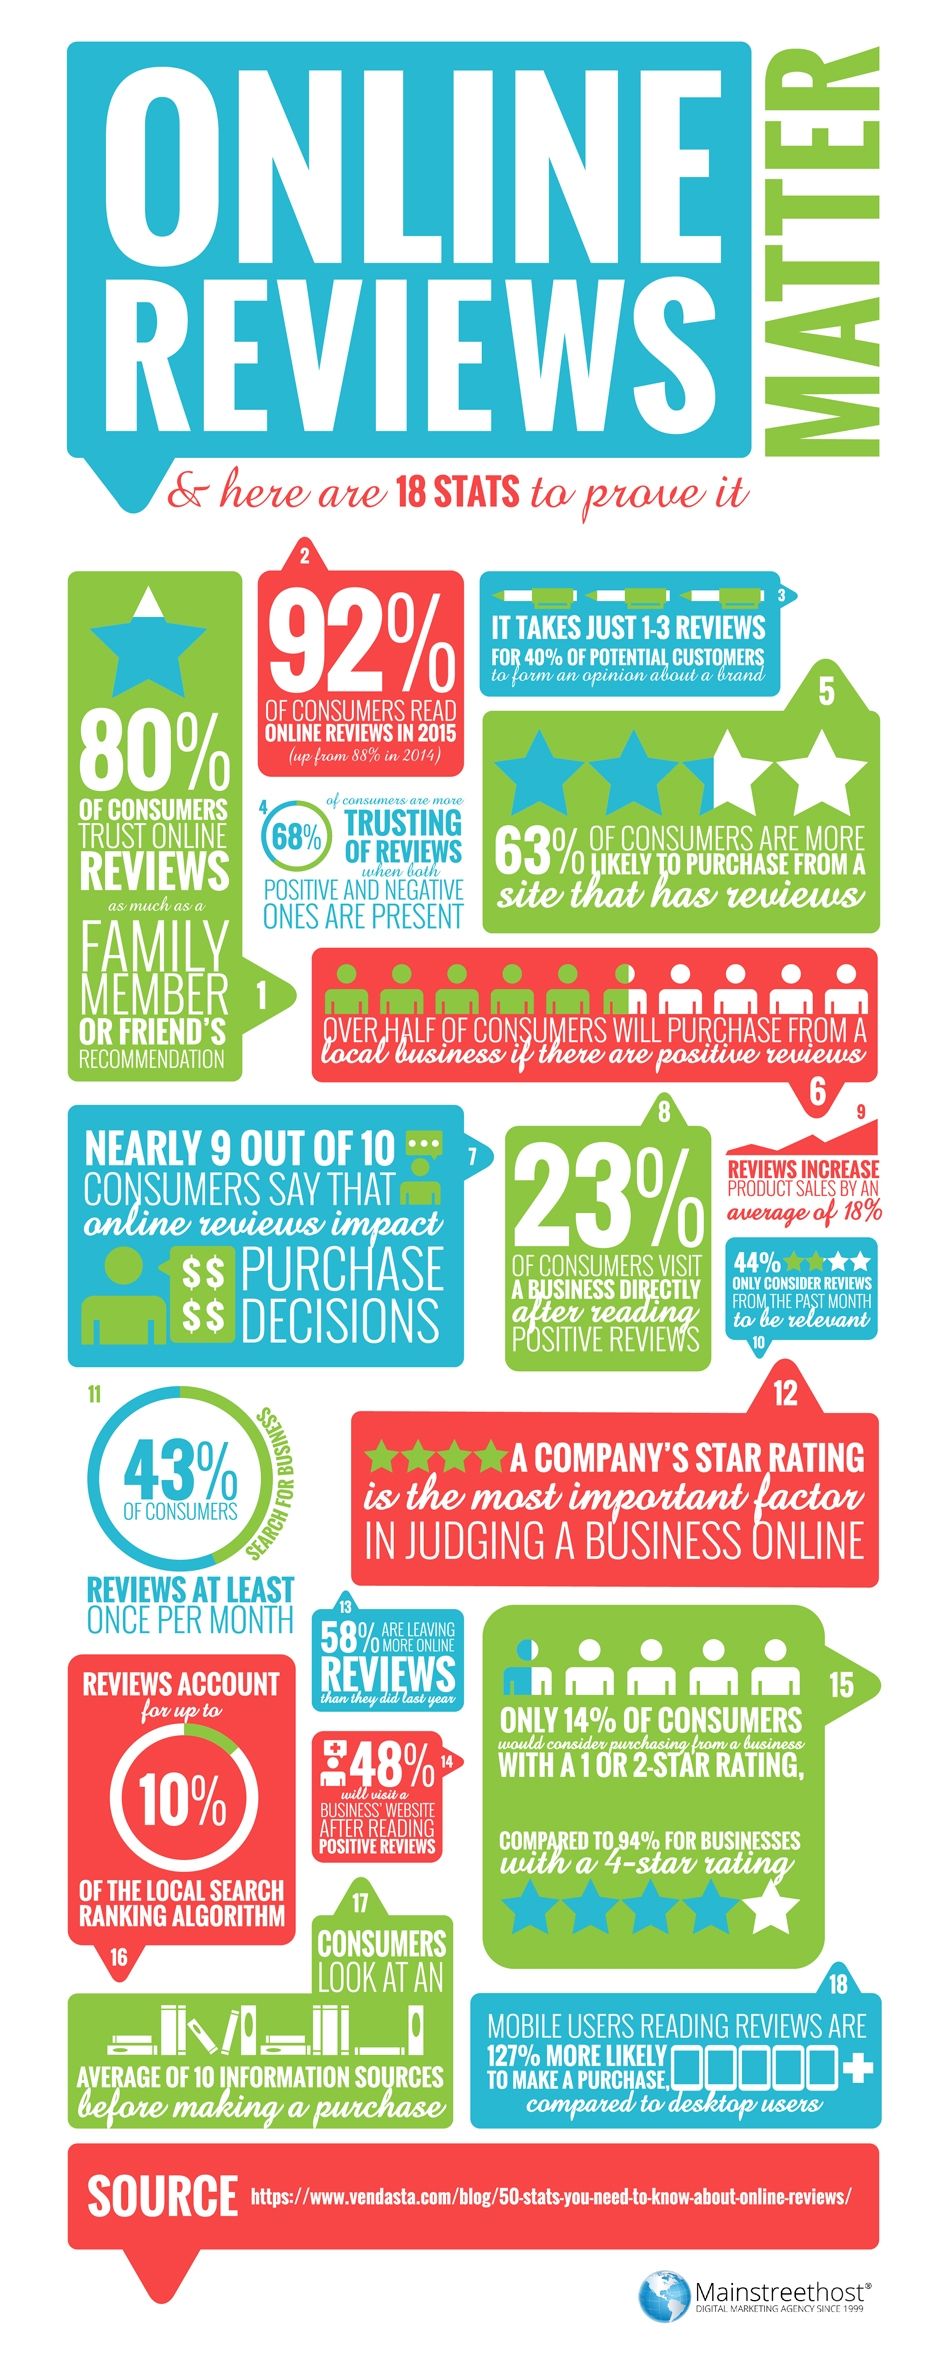 Online Reviews Infographic